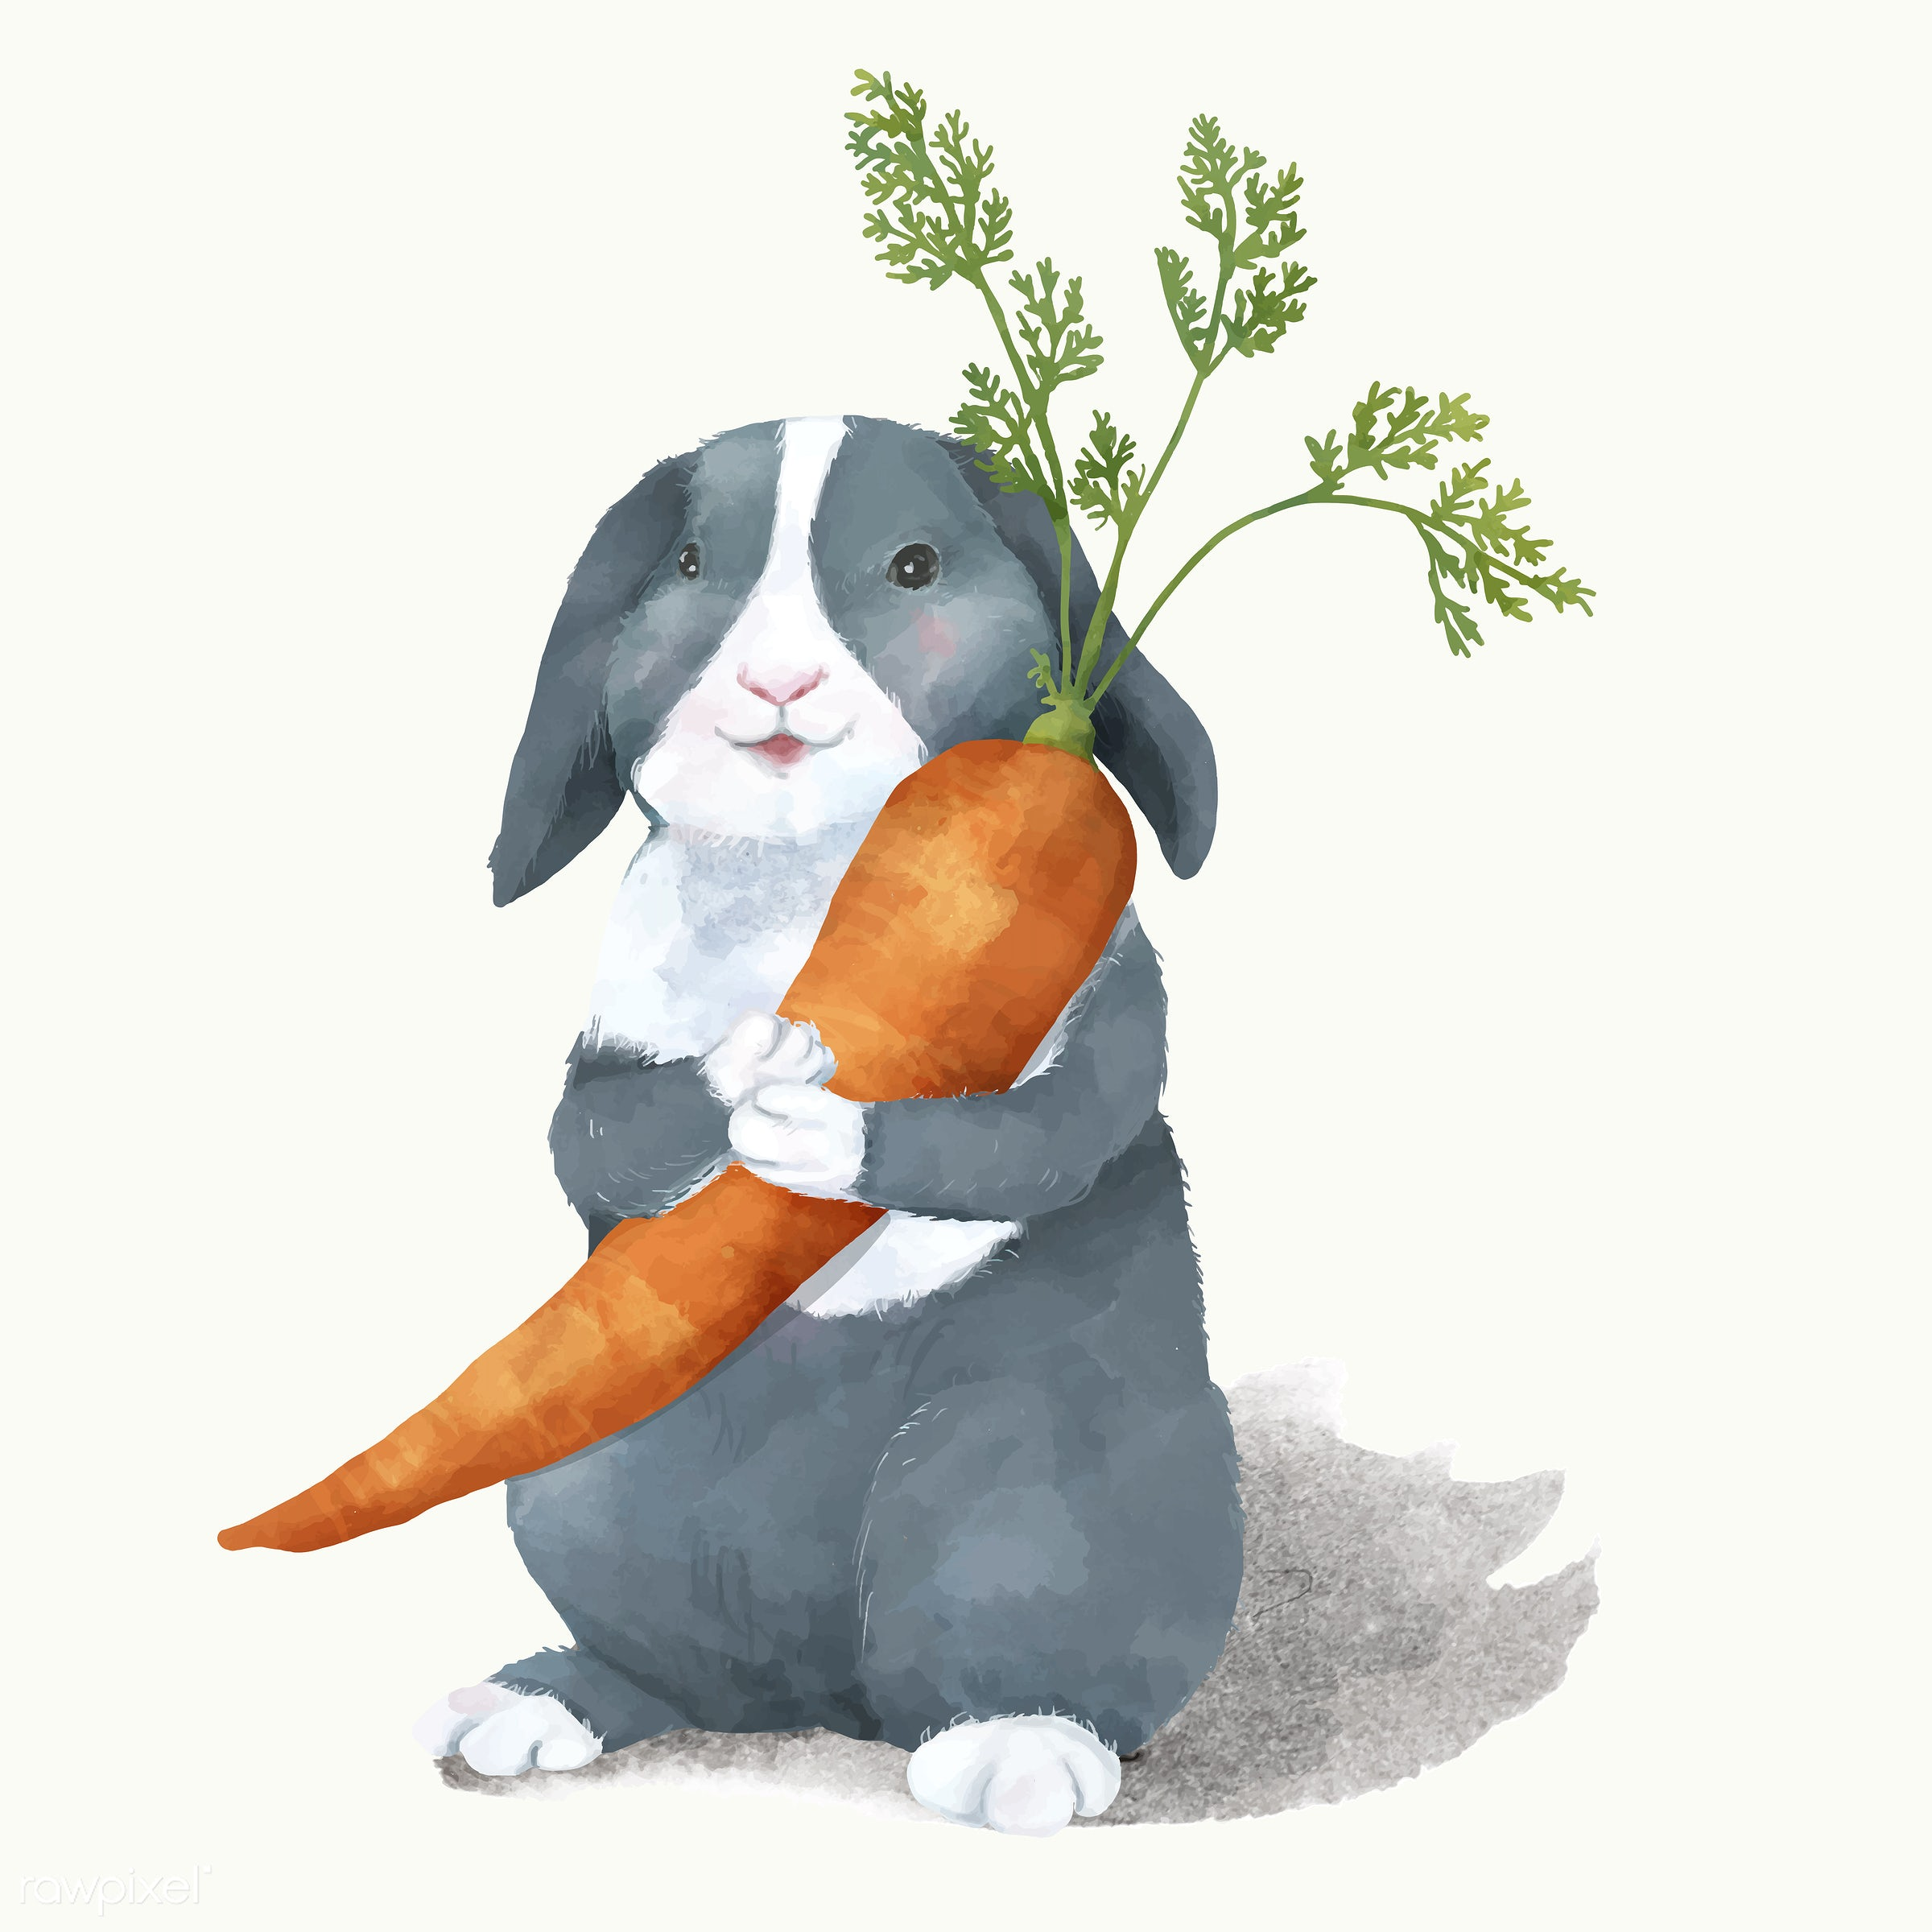 Illustration of a rabbit - animals, baby, cheerful, child, color, colored, creature, cute, fun, graphic, happy, illustration...